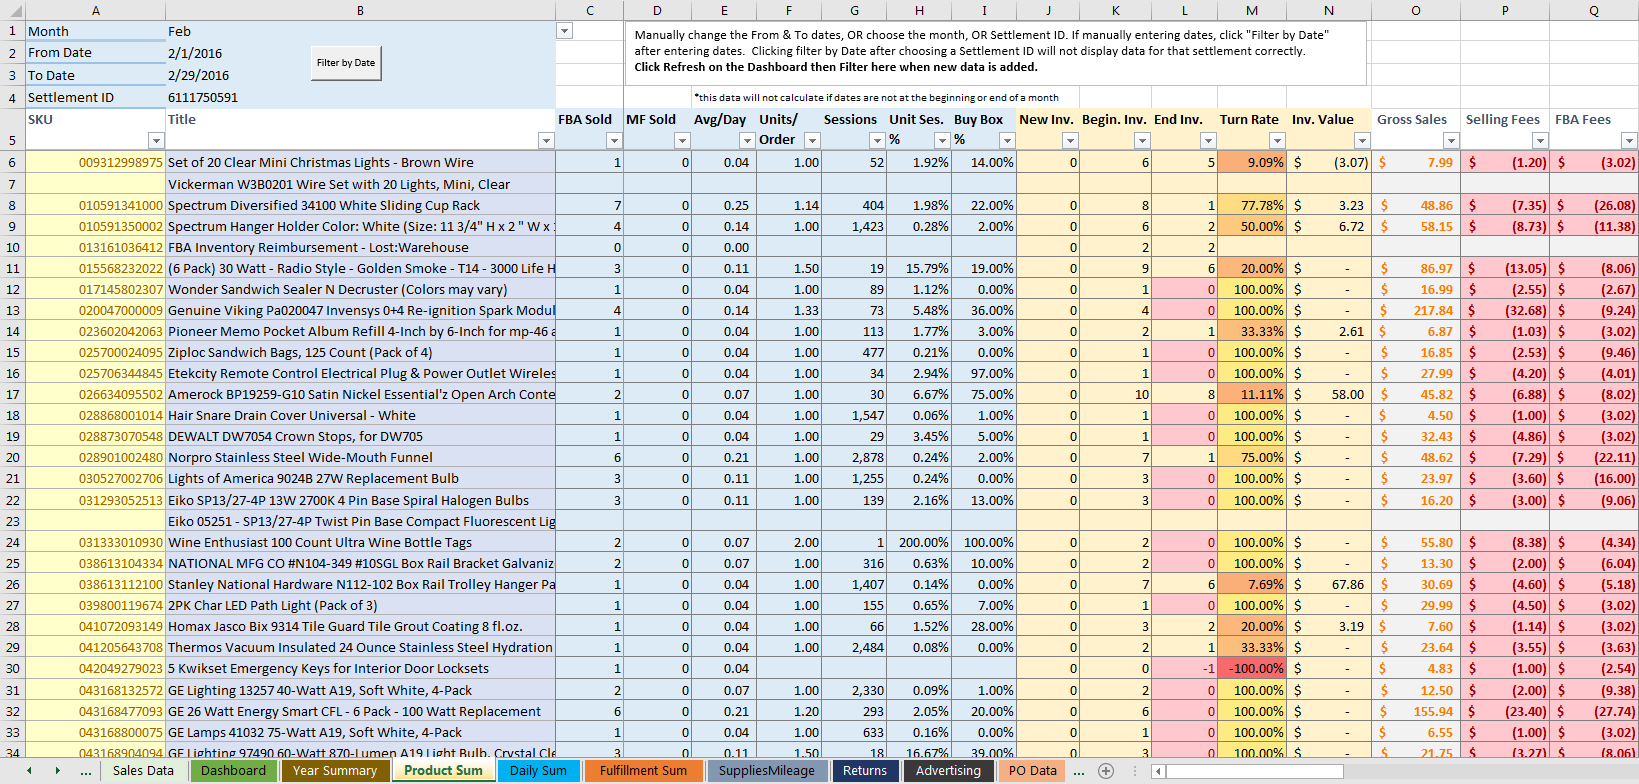 Spreadsheet Description Inside The Ultimate Amazon Fba Sales Spreadsheet V2 – Tools For Fba